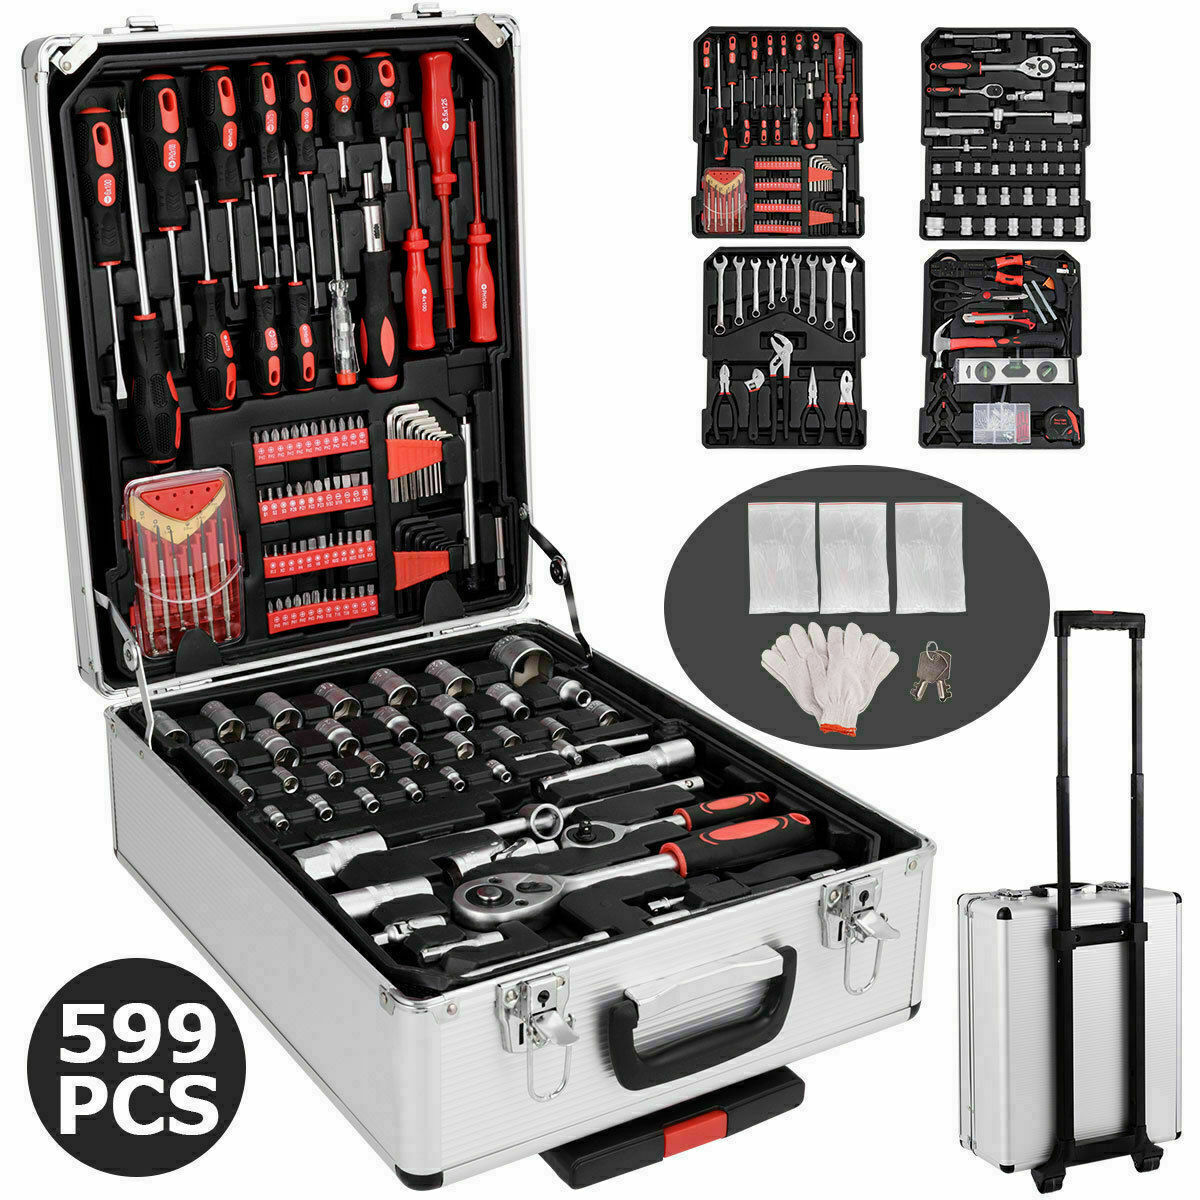 585 PCS Hand Tool Set Mechanics Kit Wrenches Socket Toolbox Trolley Case Castors